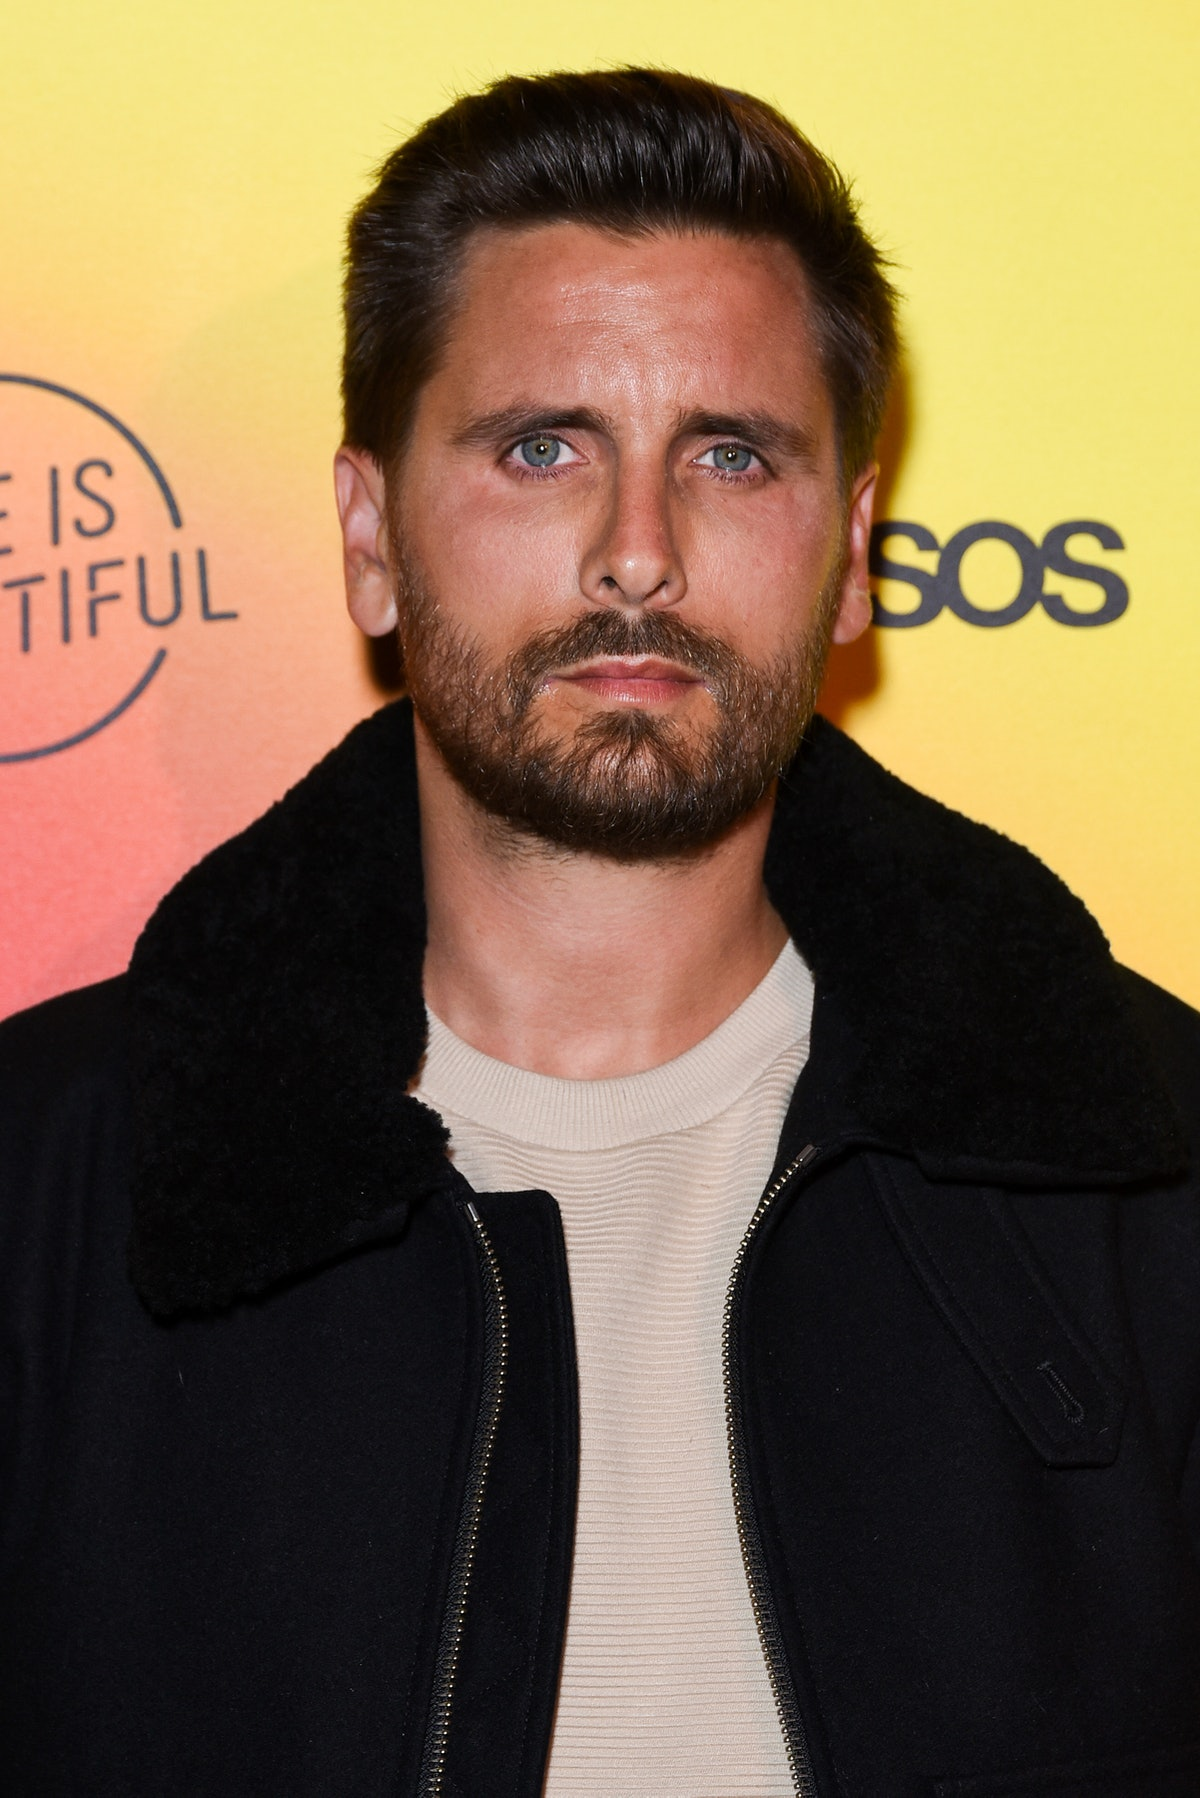 Scott Disick attends ASOS celebrates partnership with Life Is Beautiful in Los Angeles in 2019, year...